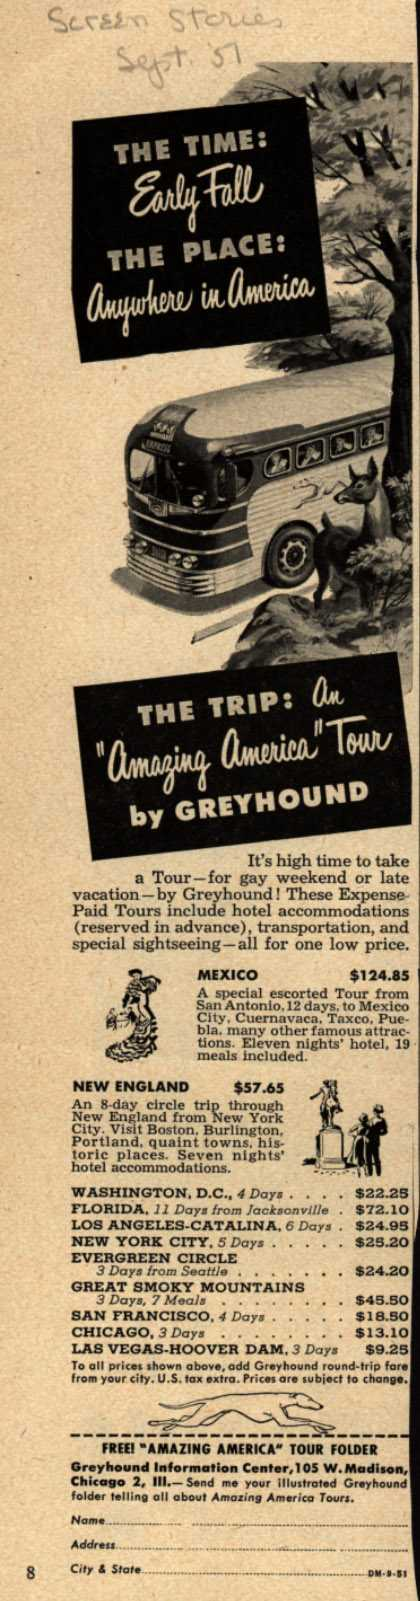 Greyhound's Amazing America Tours – The Time: Early Fall, The Place: Anywhere in America (1951)